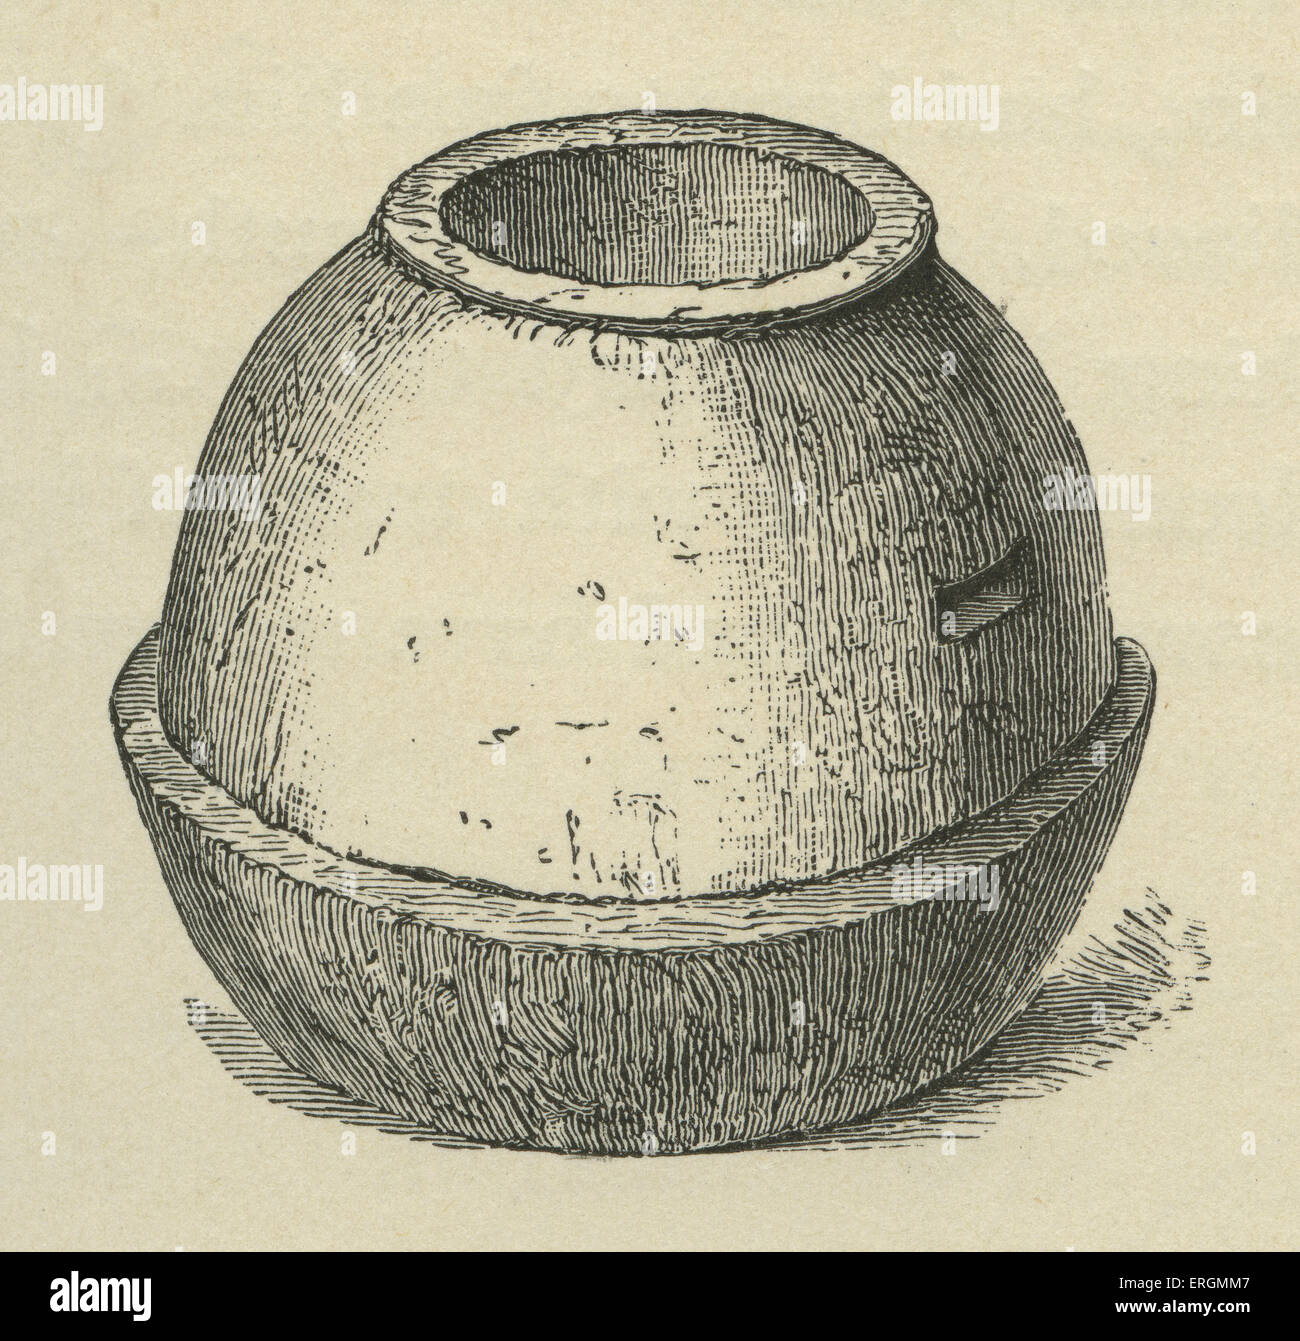 A primitive stone quern, used in the grinding of cereals and corn into flower. After an illustration from the archaeological - Stock Image